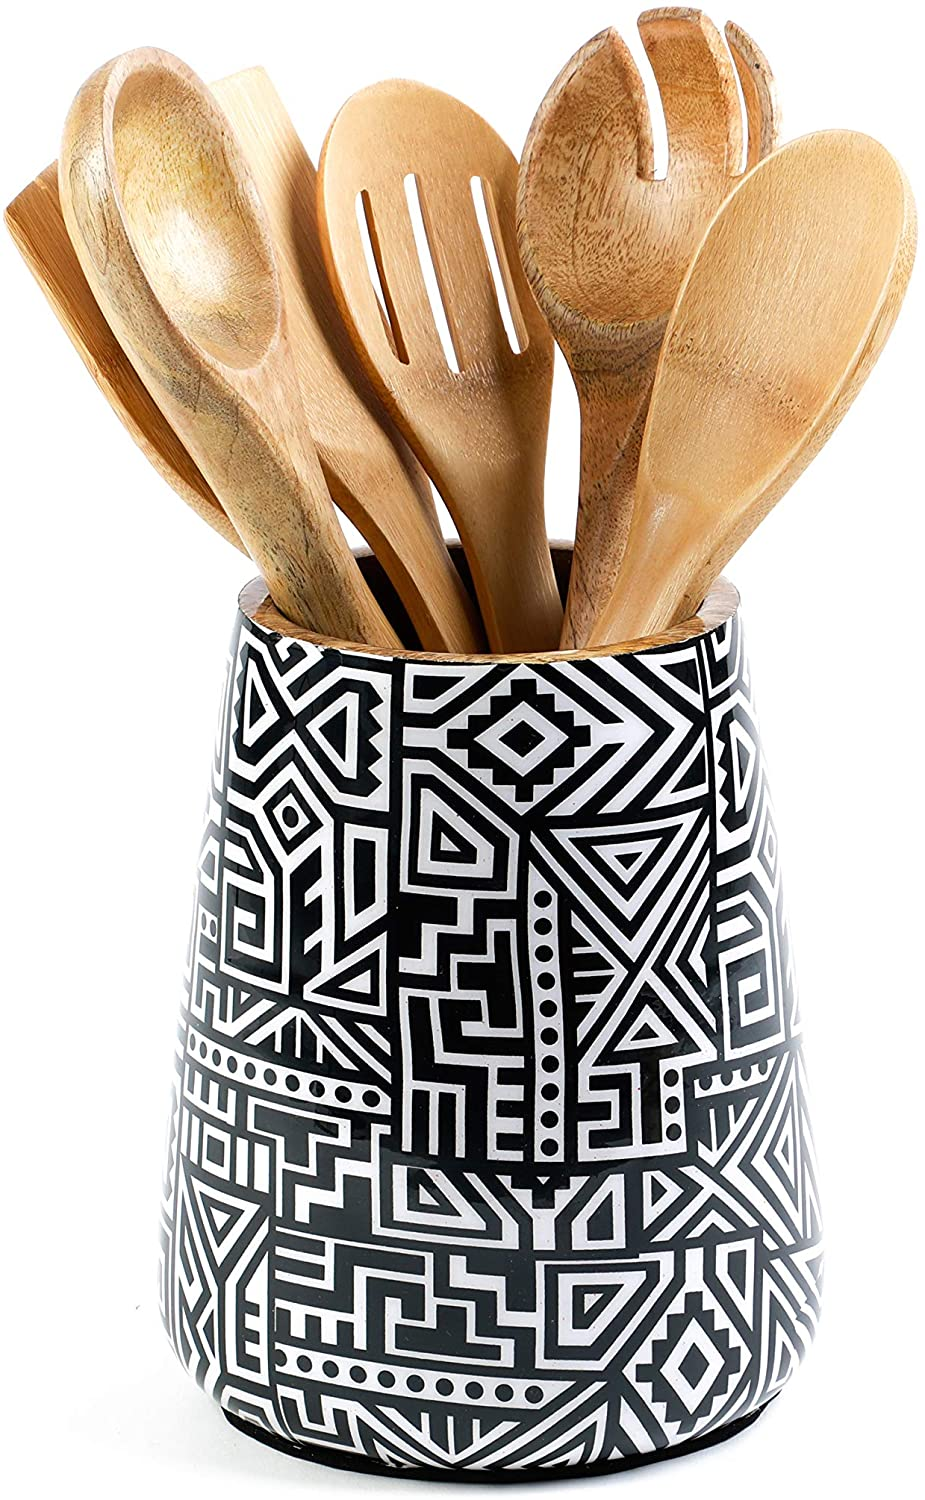 Kitchen Utensil Holder or Utensil Crock, Large Decorative Wooden Utensil  Organizer for Spatula, Spoon or Any Cooking Tools, Mango Wood, Tribal Black